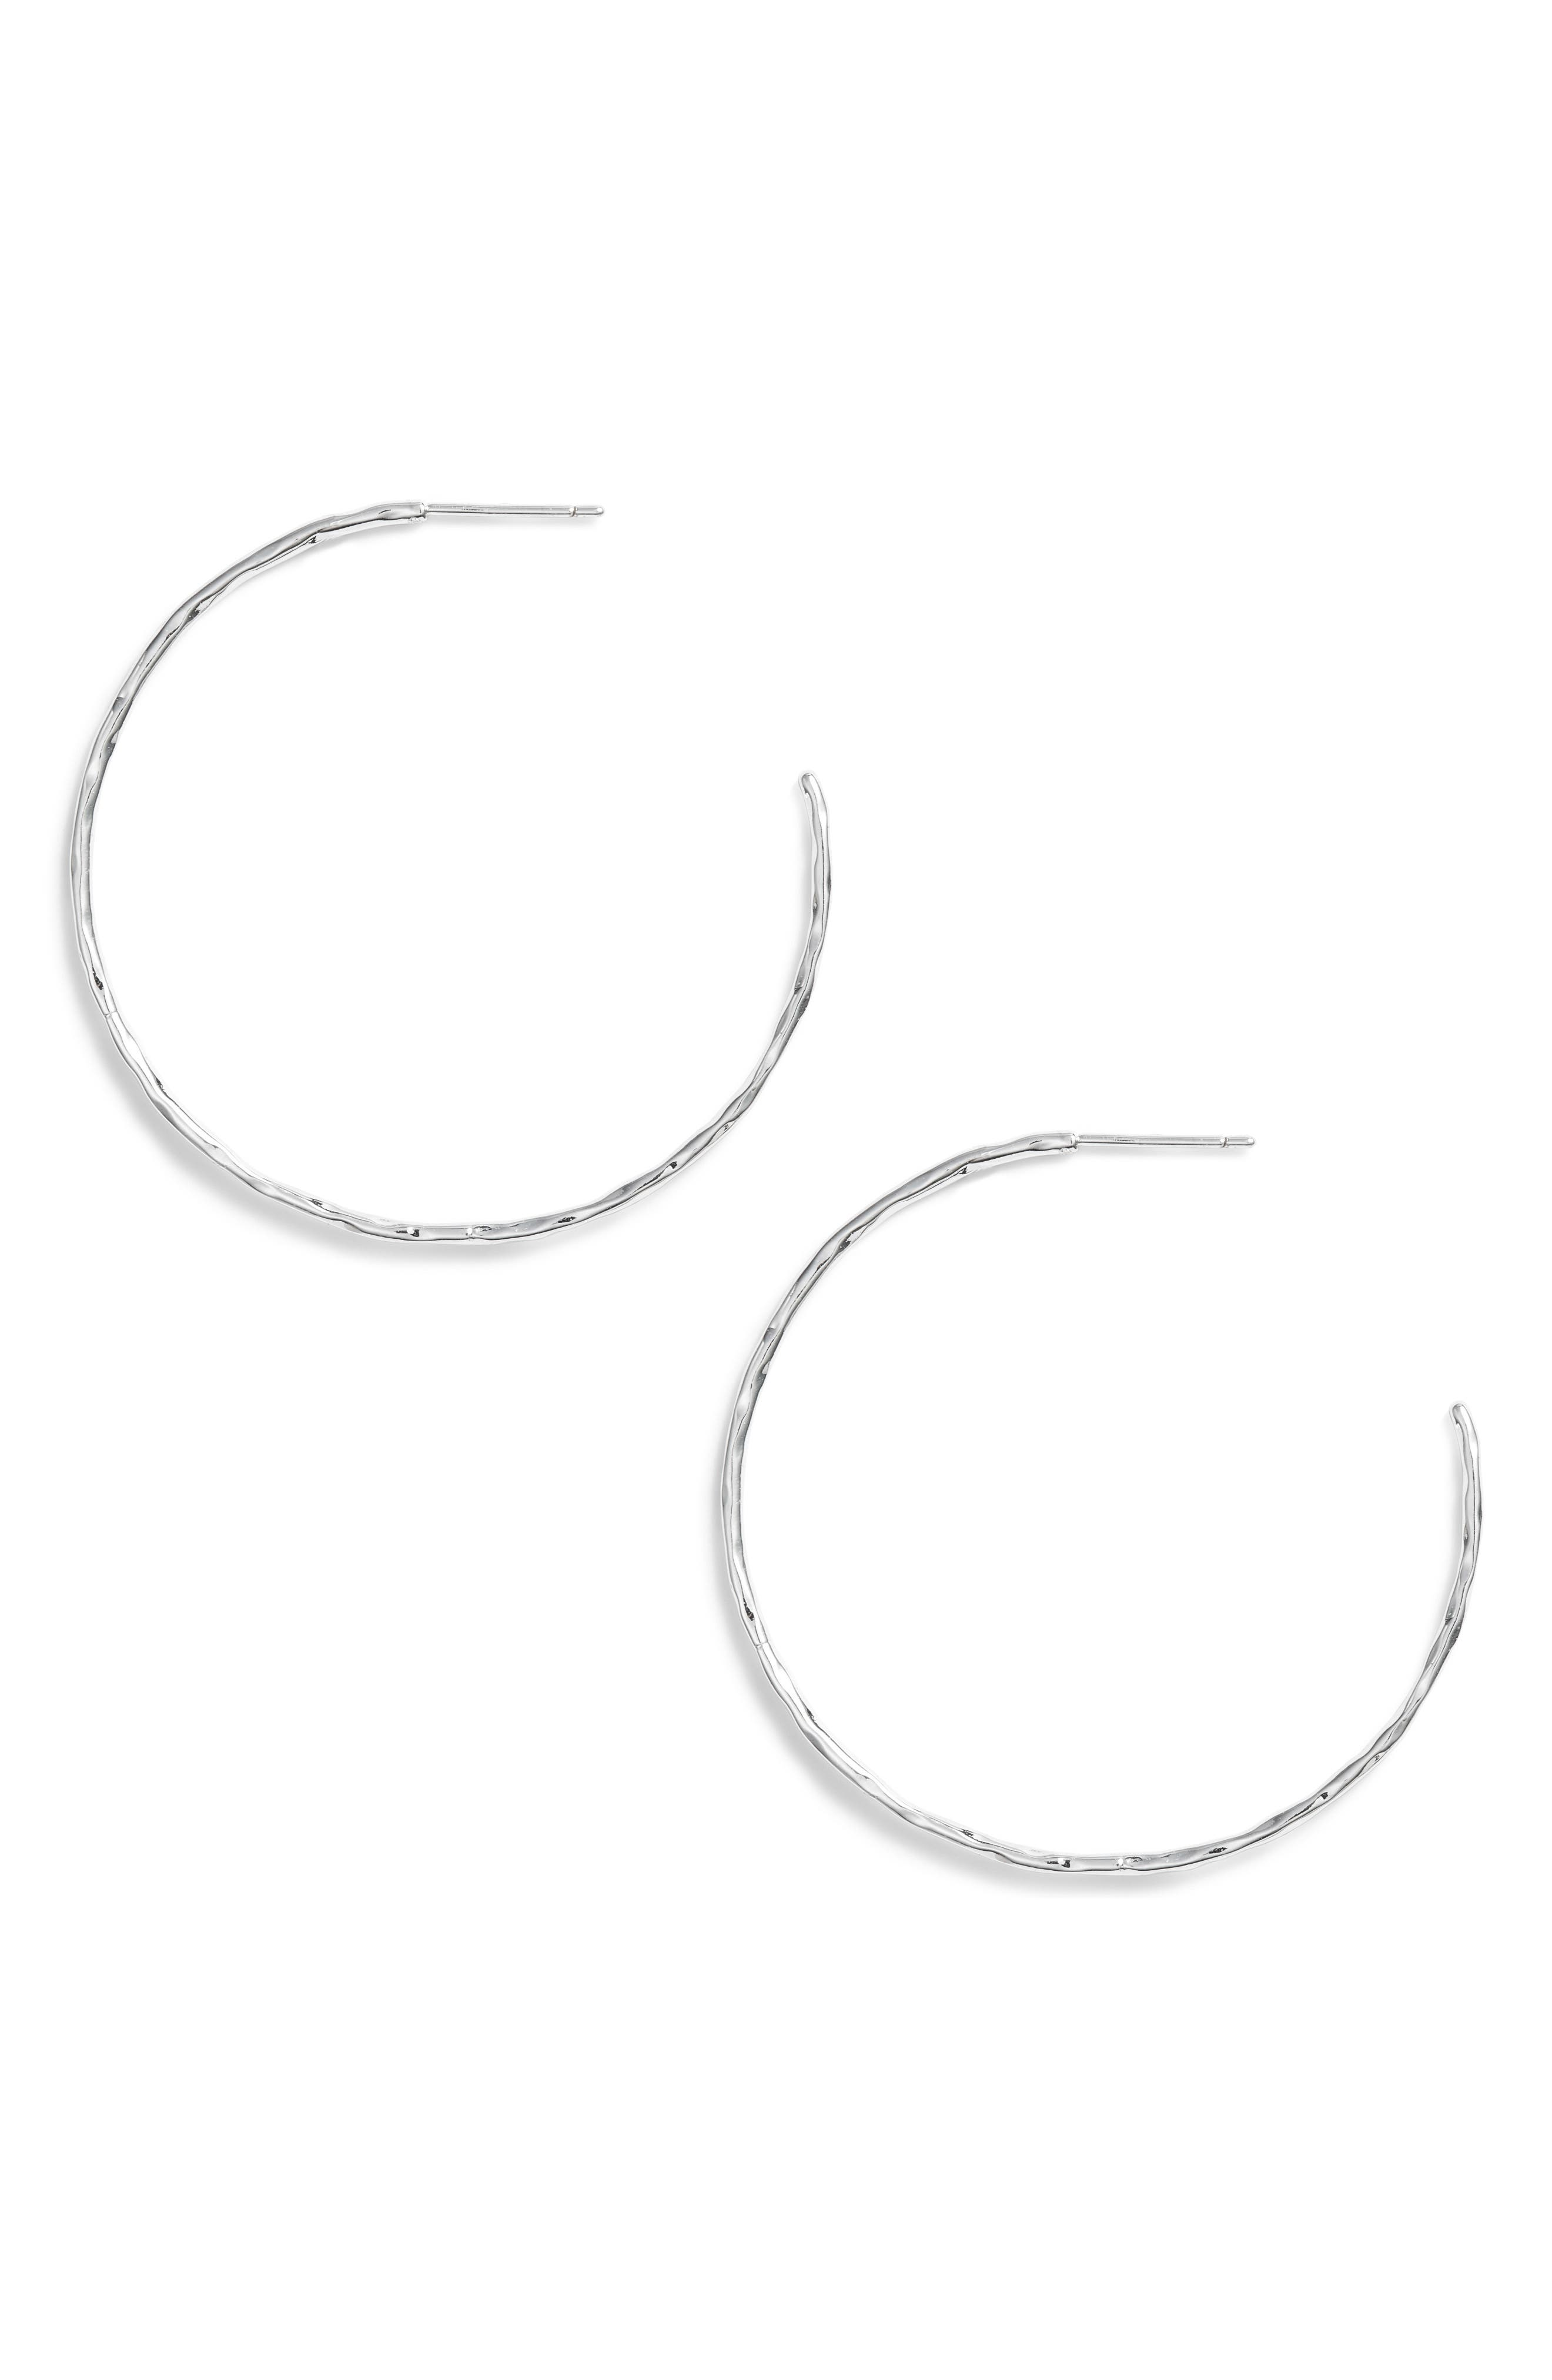 GORJANA Taner Hoop Earrings, Main, color, SILVER